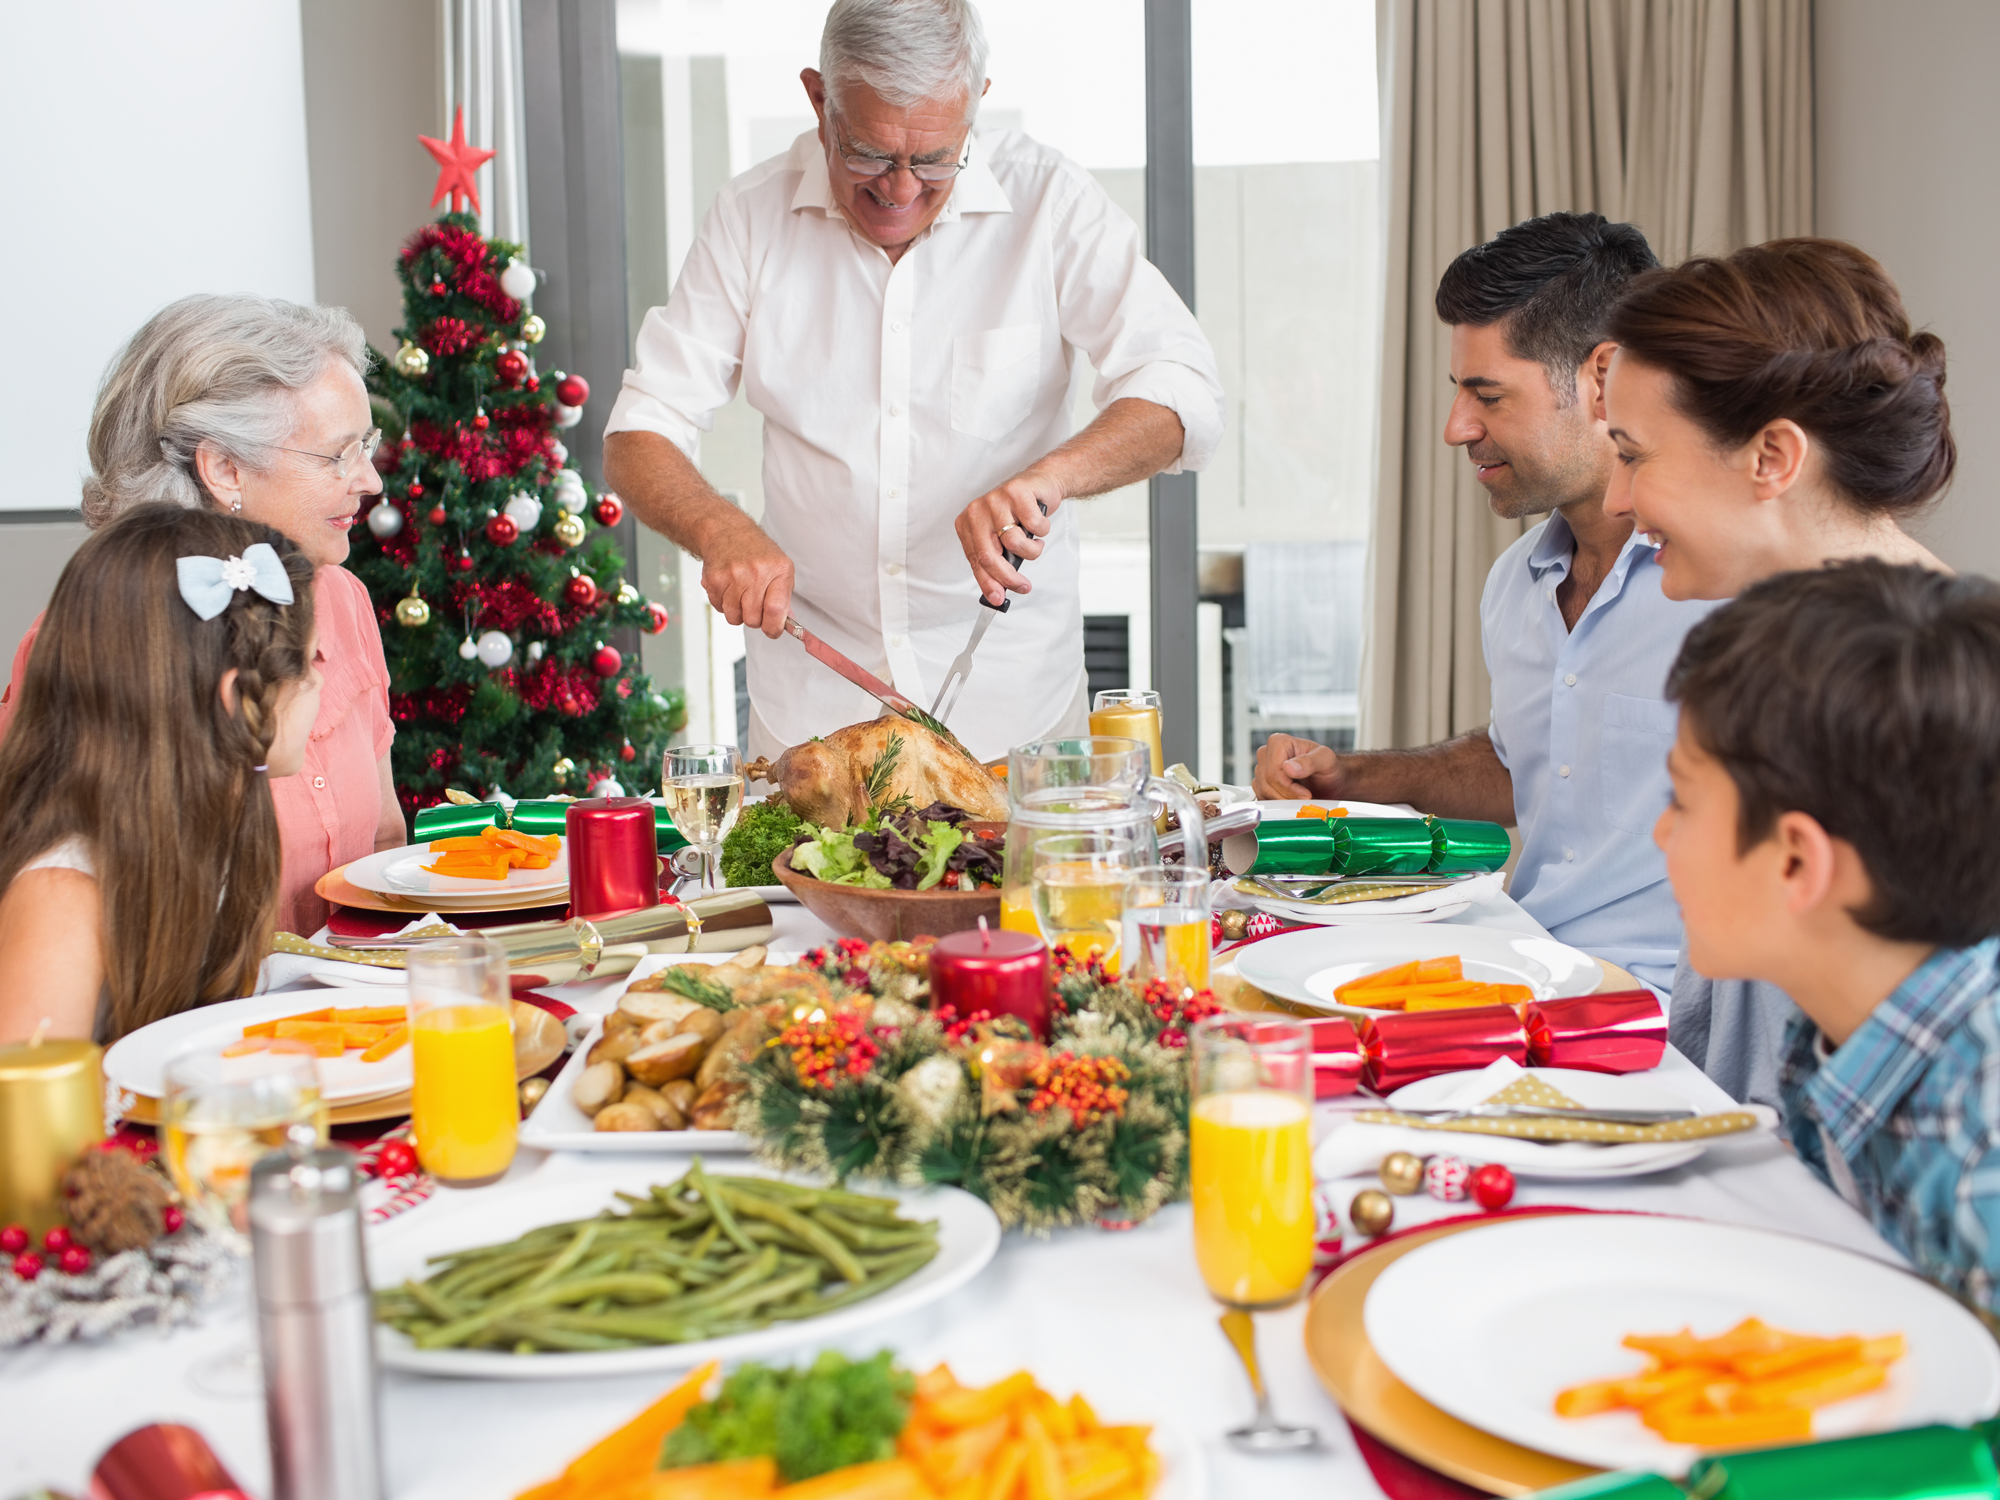 Keep food-borne illness from ruining holiday meals